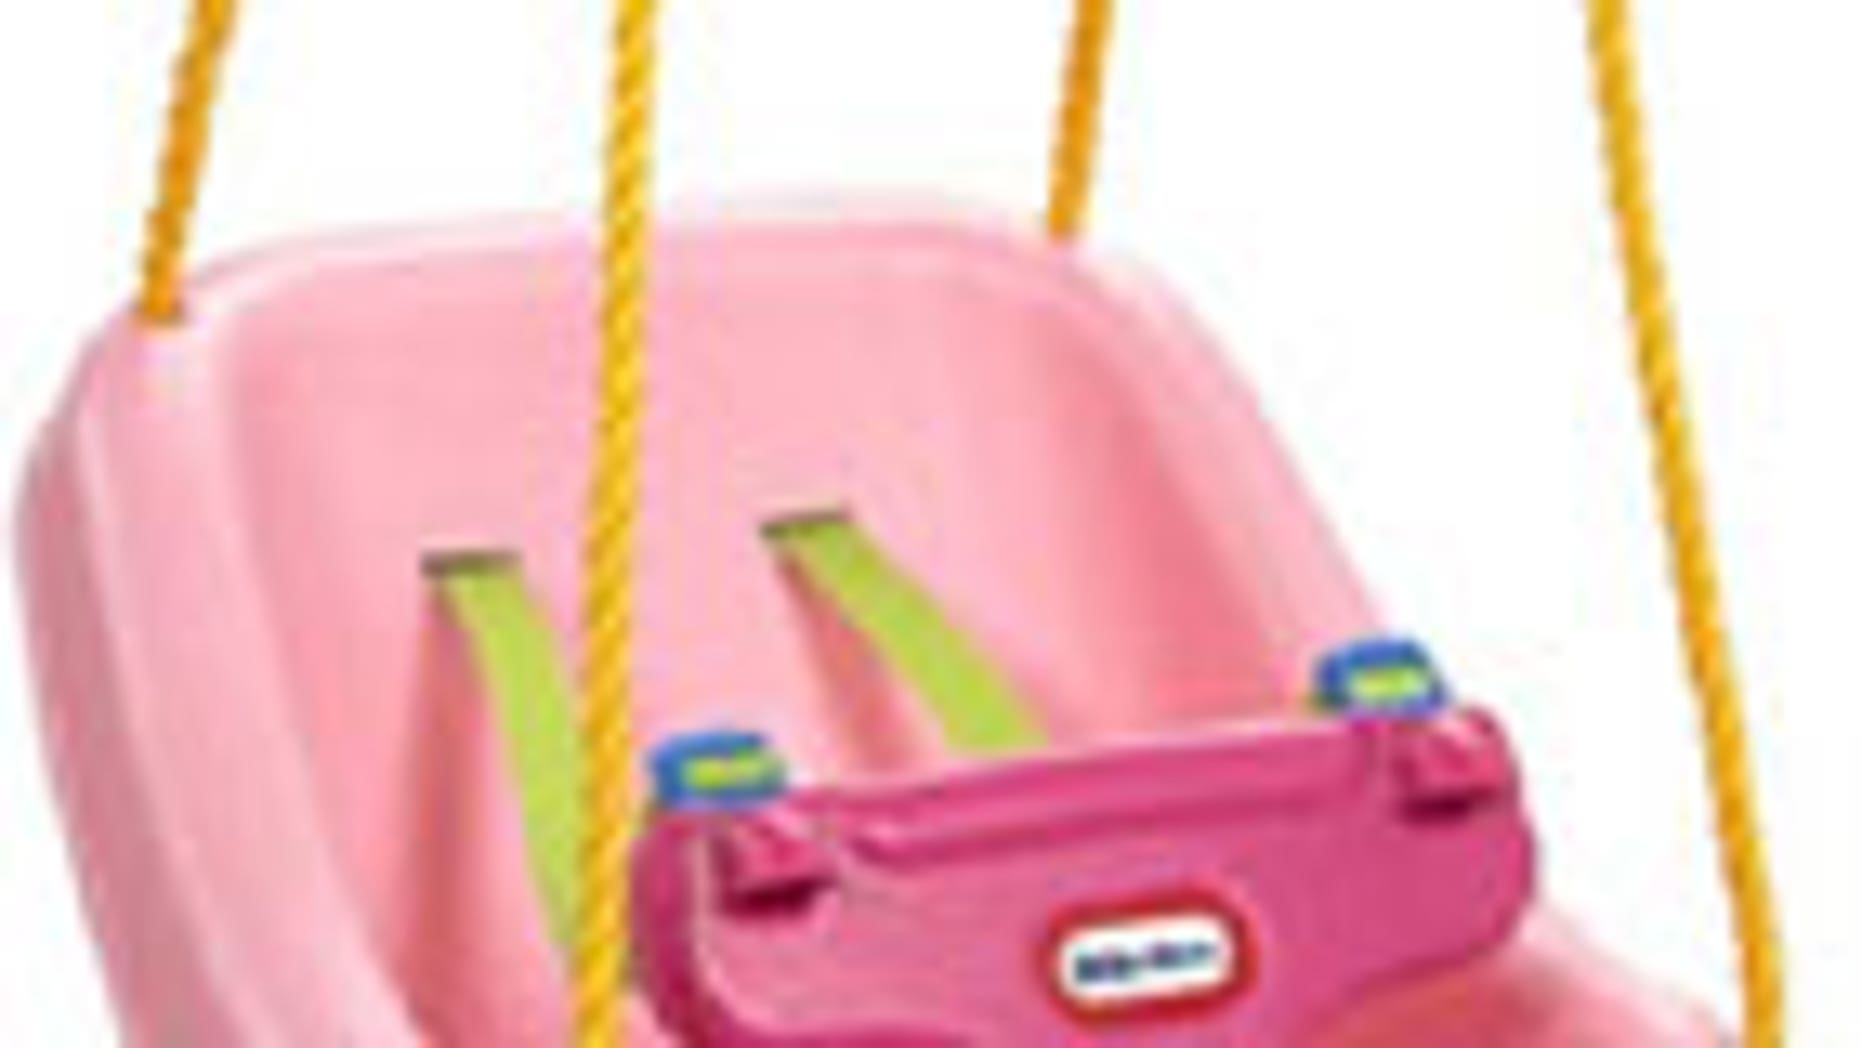 Little Tikes issued the recall after receiving reports of the product breaking and injuries.